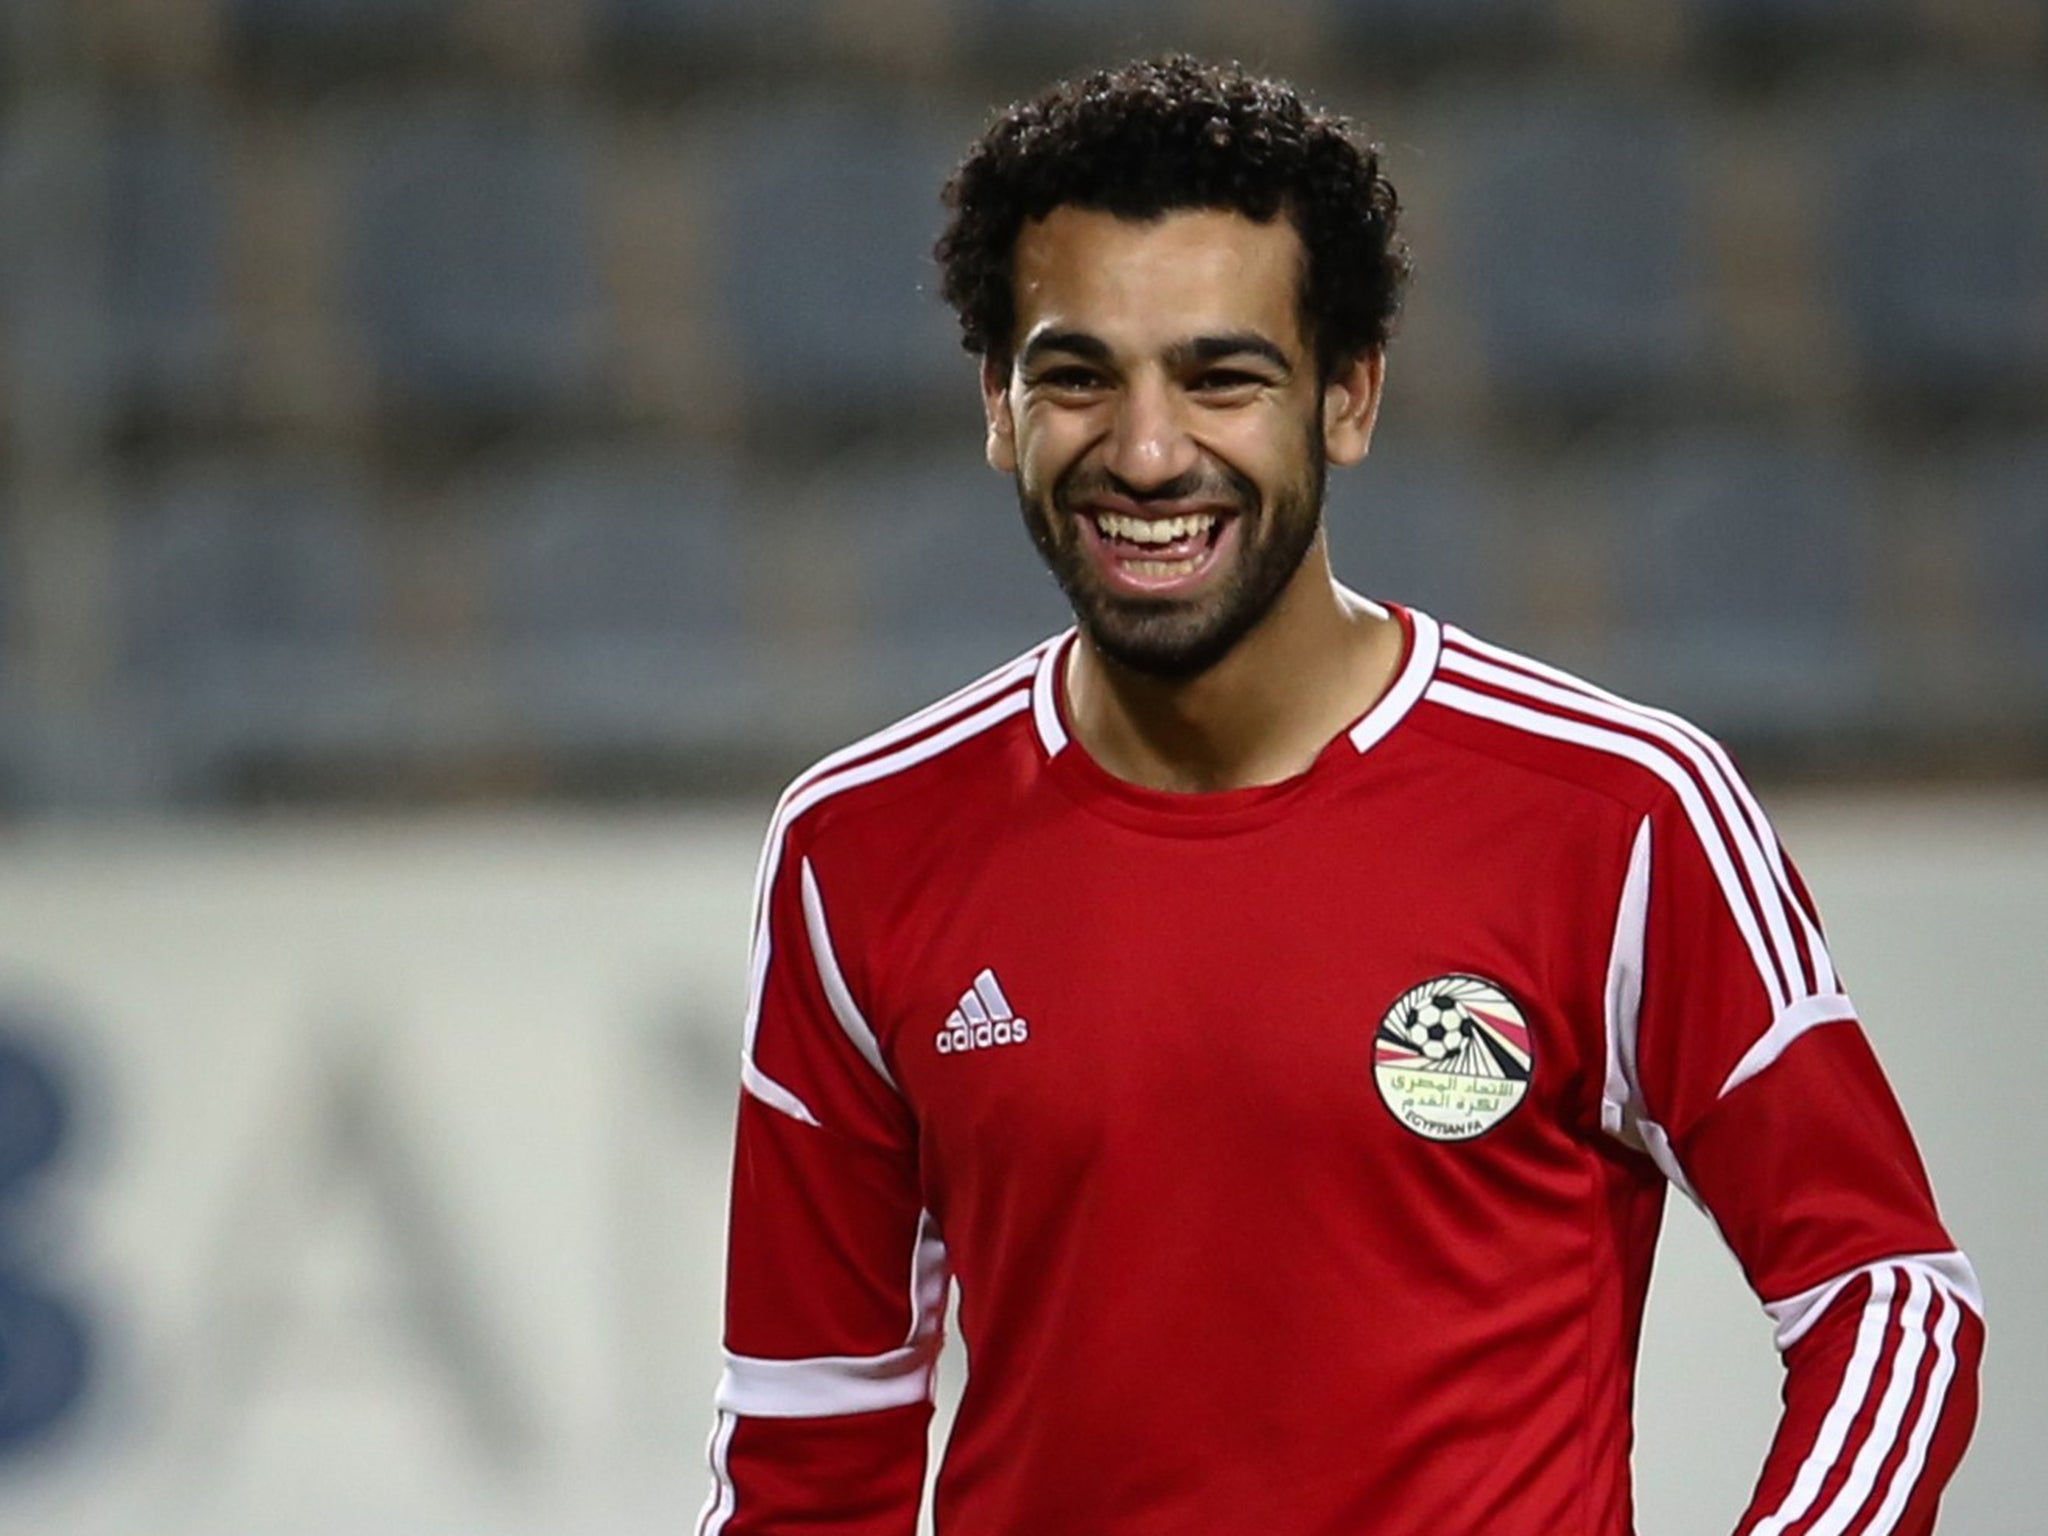 Mohamed Salah to wear No 74 shirt during loan spell from Chelsea in ...